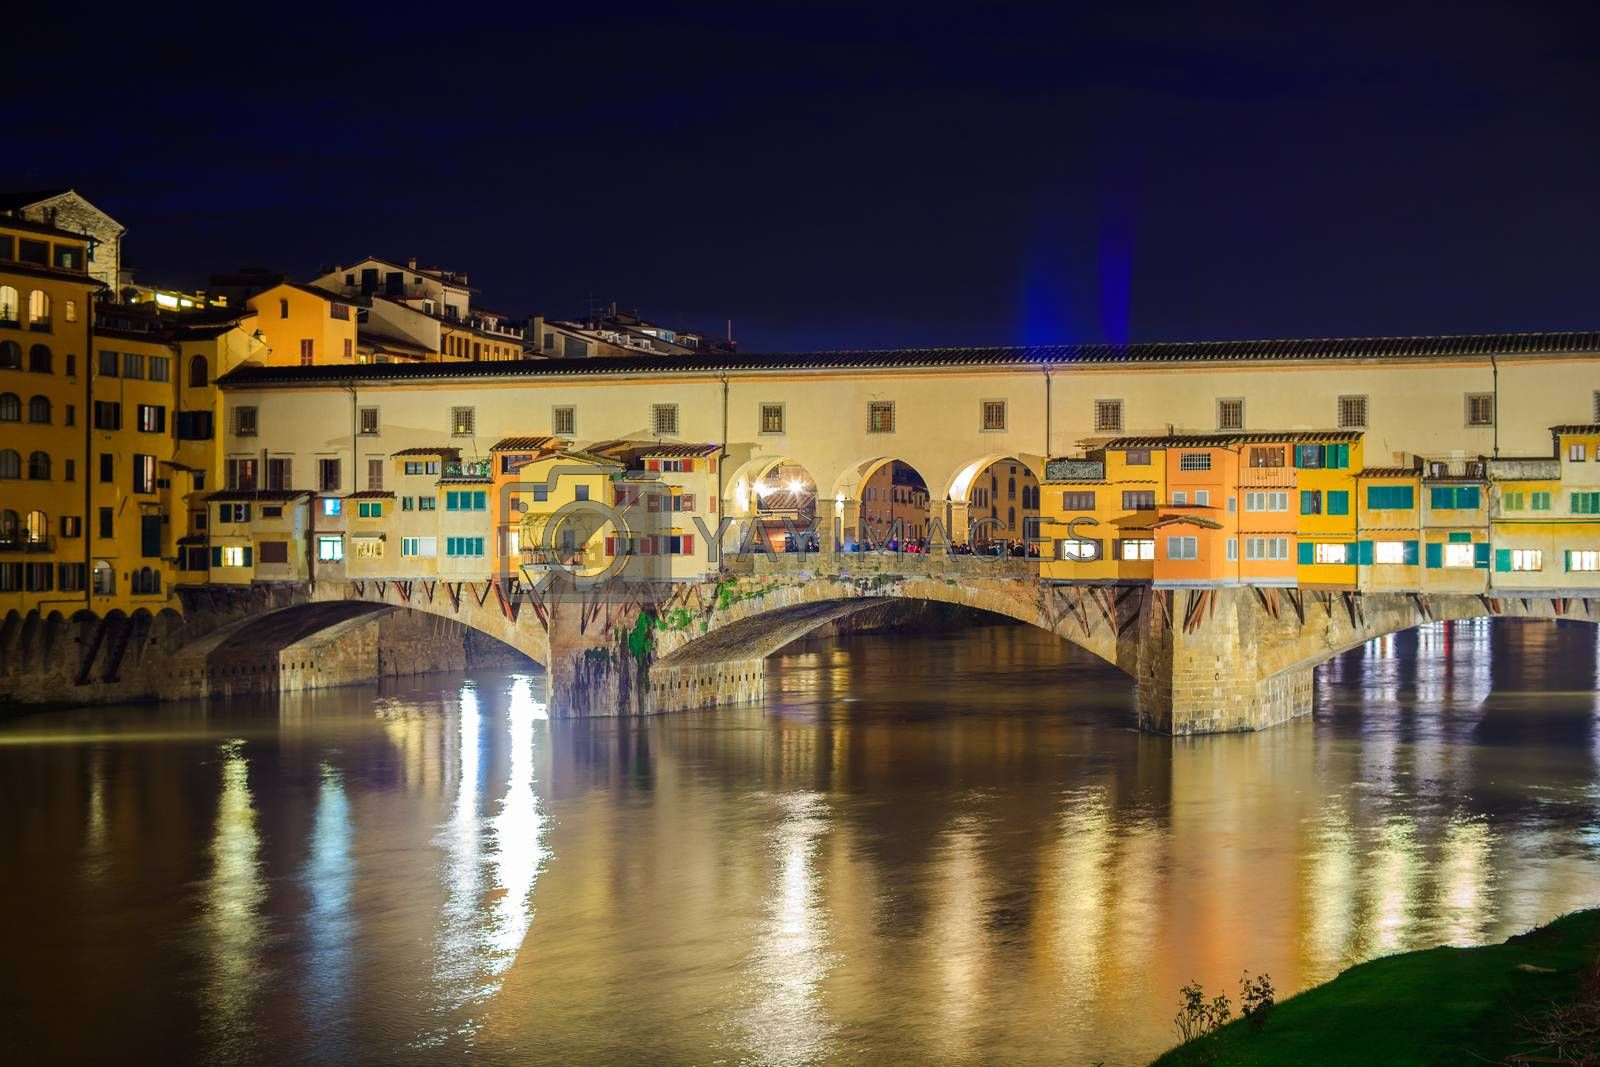 View of Ponte Vecchio in Florence, tuscany. Italy